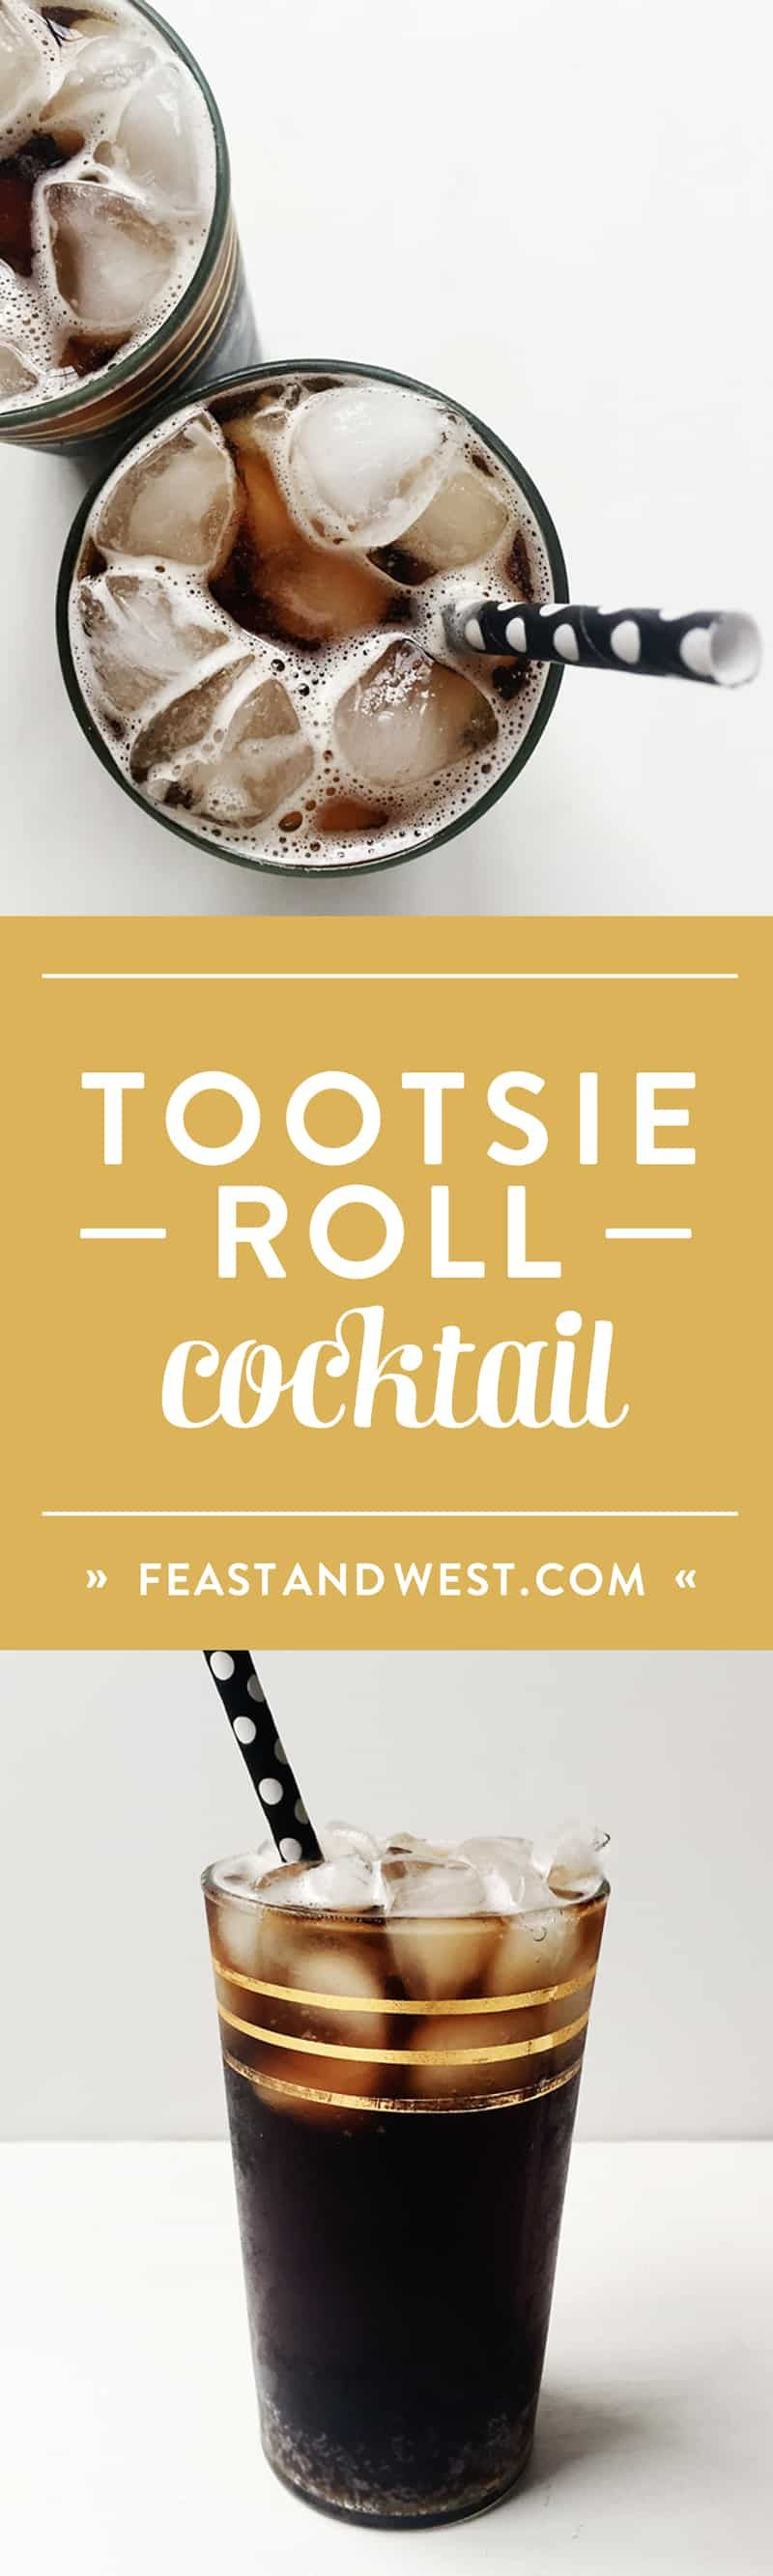 The Tootsie Roll Cocktail Recipe Tootsie roll cocktail